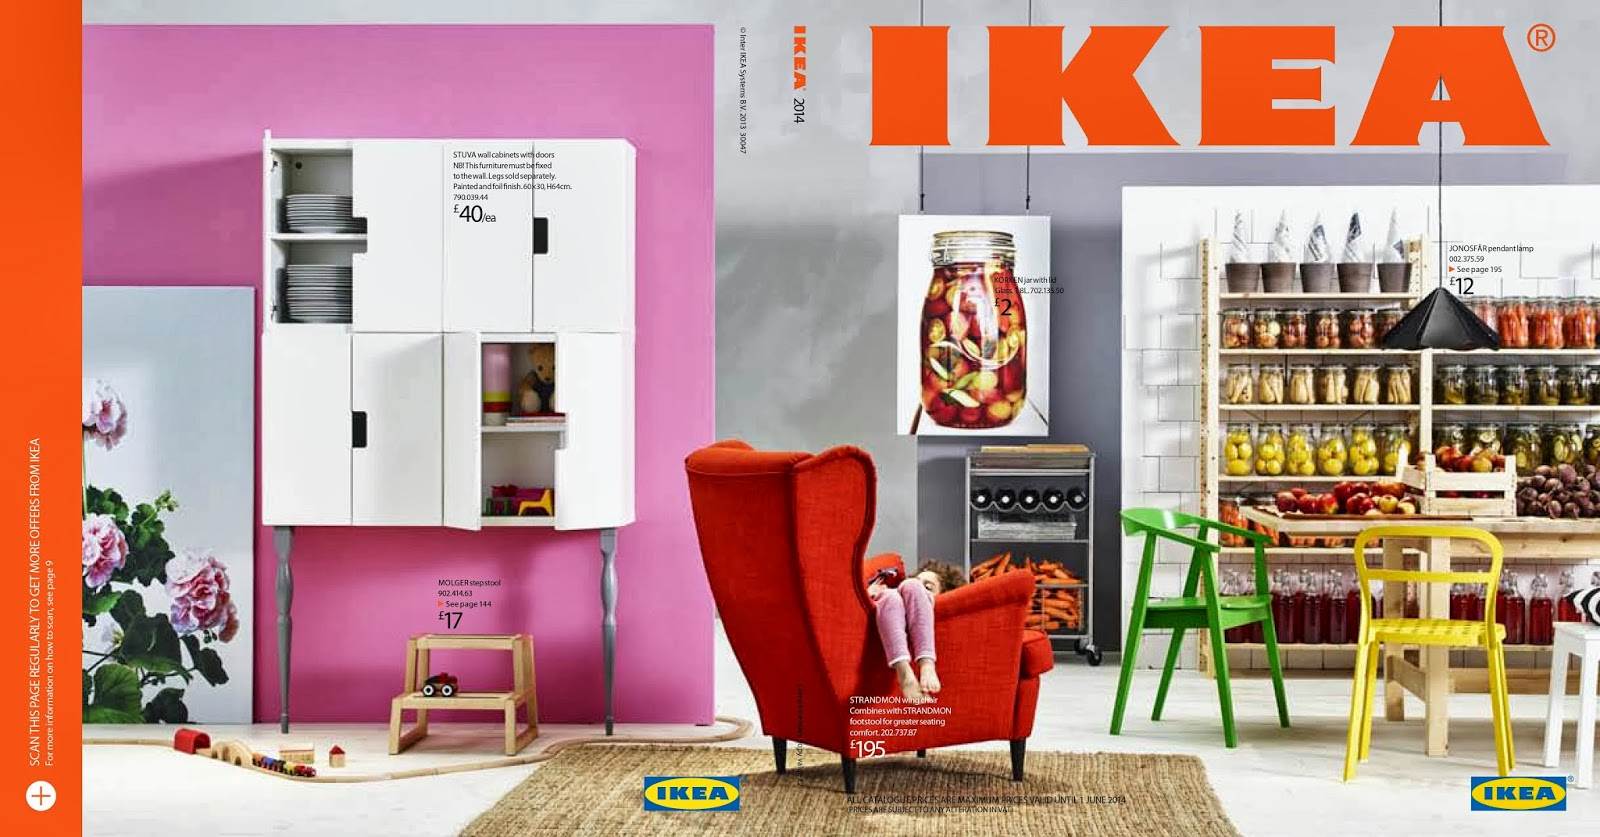 Painting The Ikea Catalogue Cover